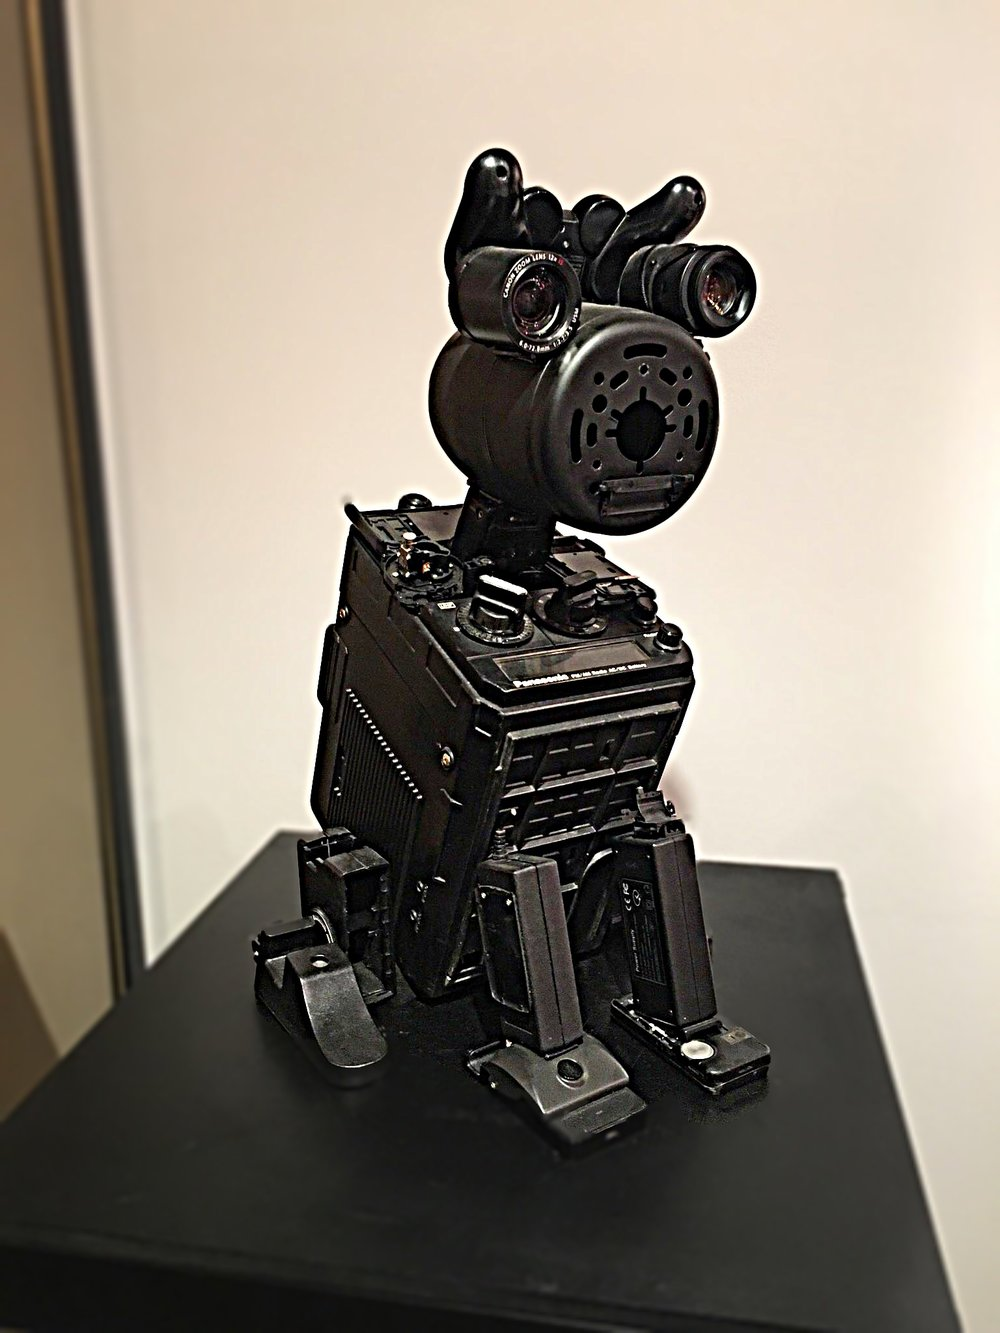 FORI, Black Dog , 2017. In his JUNK BIT series, FORI critiques society's excess consumption and wastefulness by repurposing discarded electronic waste and refastening them into robot creations.